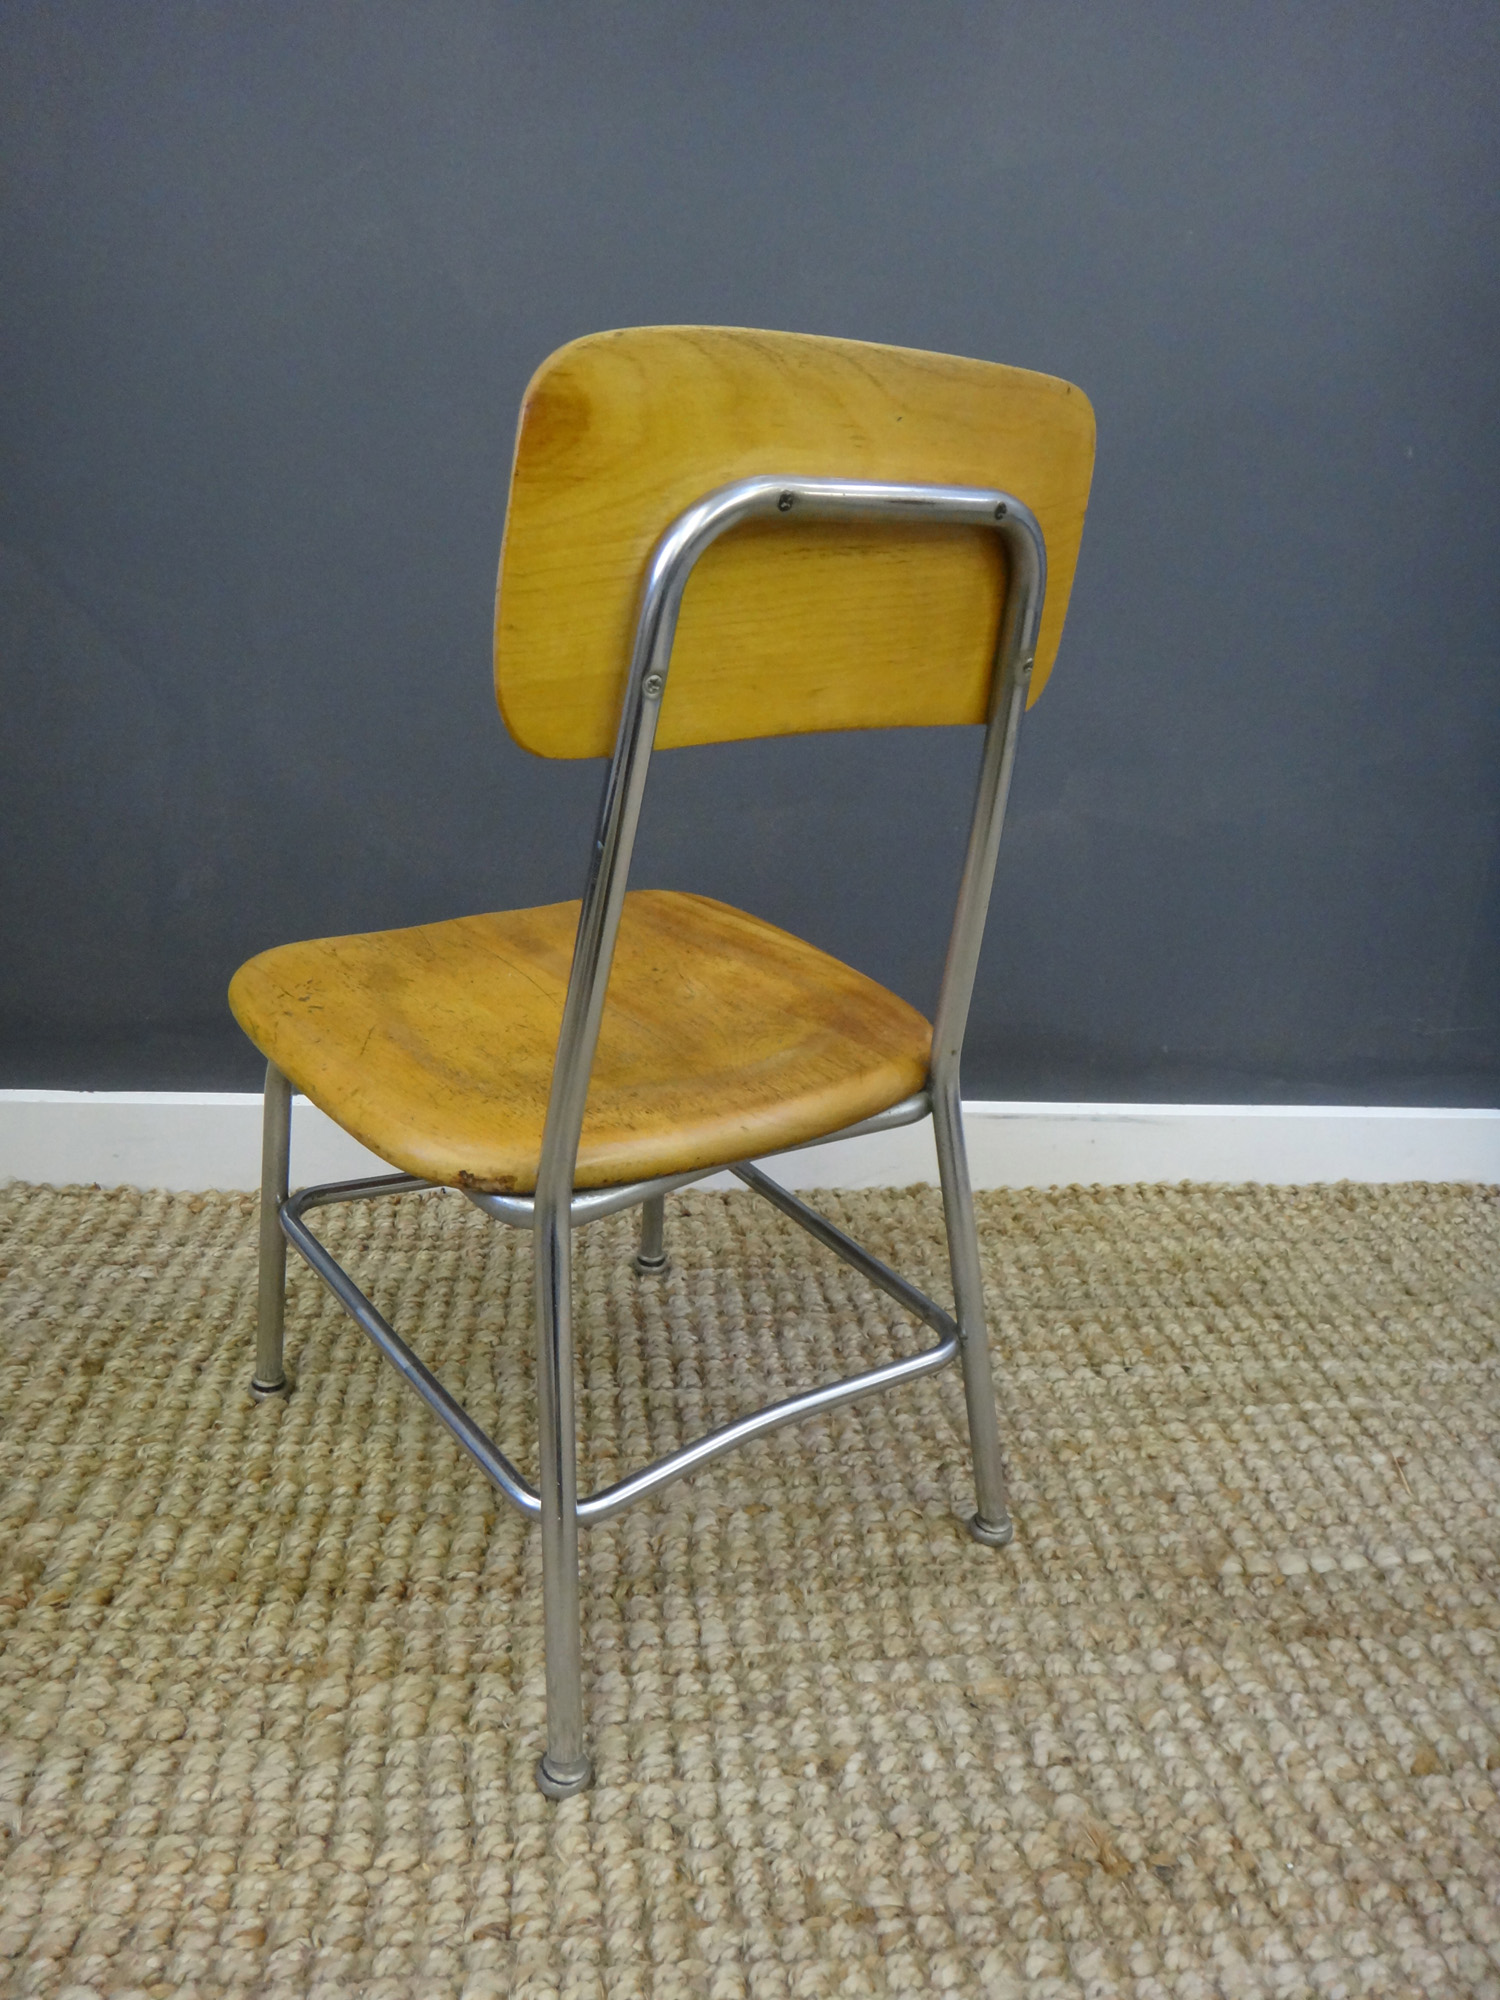 Heywood Wakefield Child's Chair